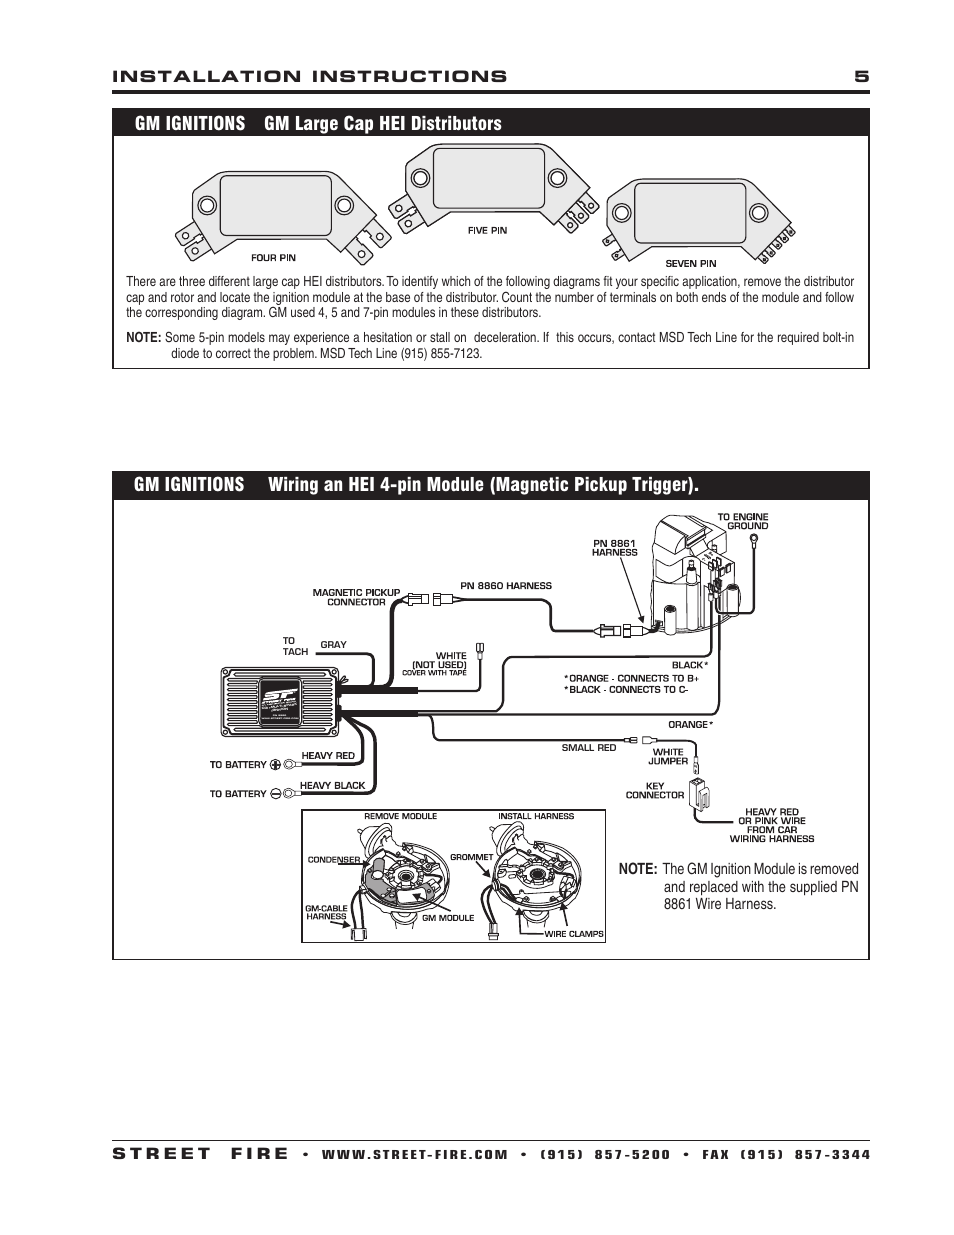 medium resolution of gm ignition control module wiring diagram as well msd heimsd 8861small resolution of gm ignitions gm